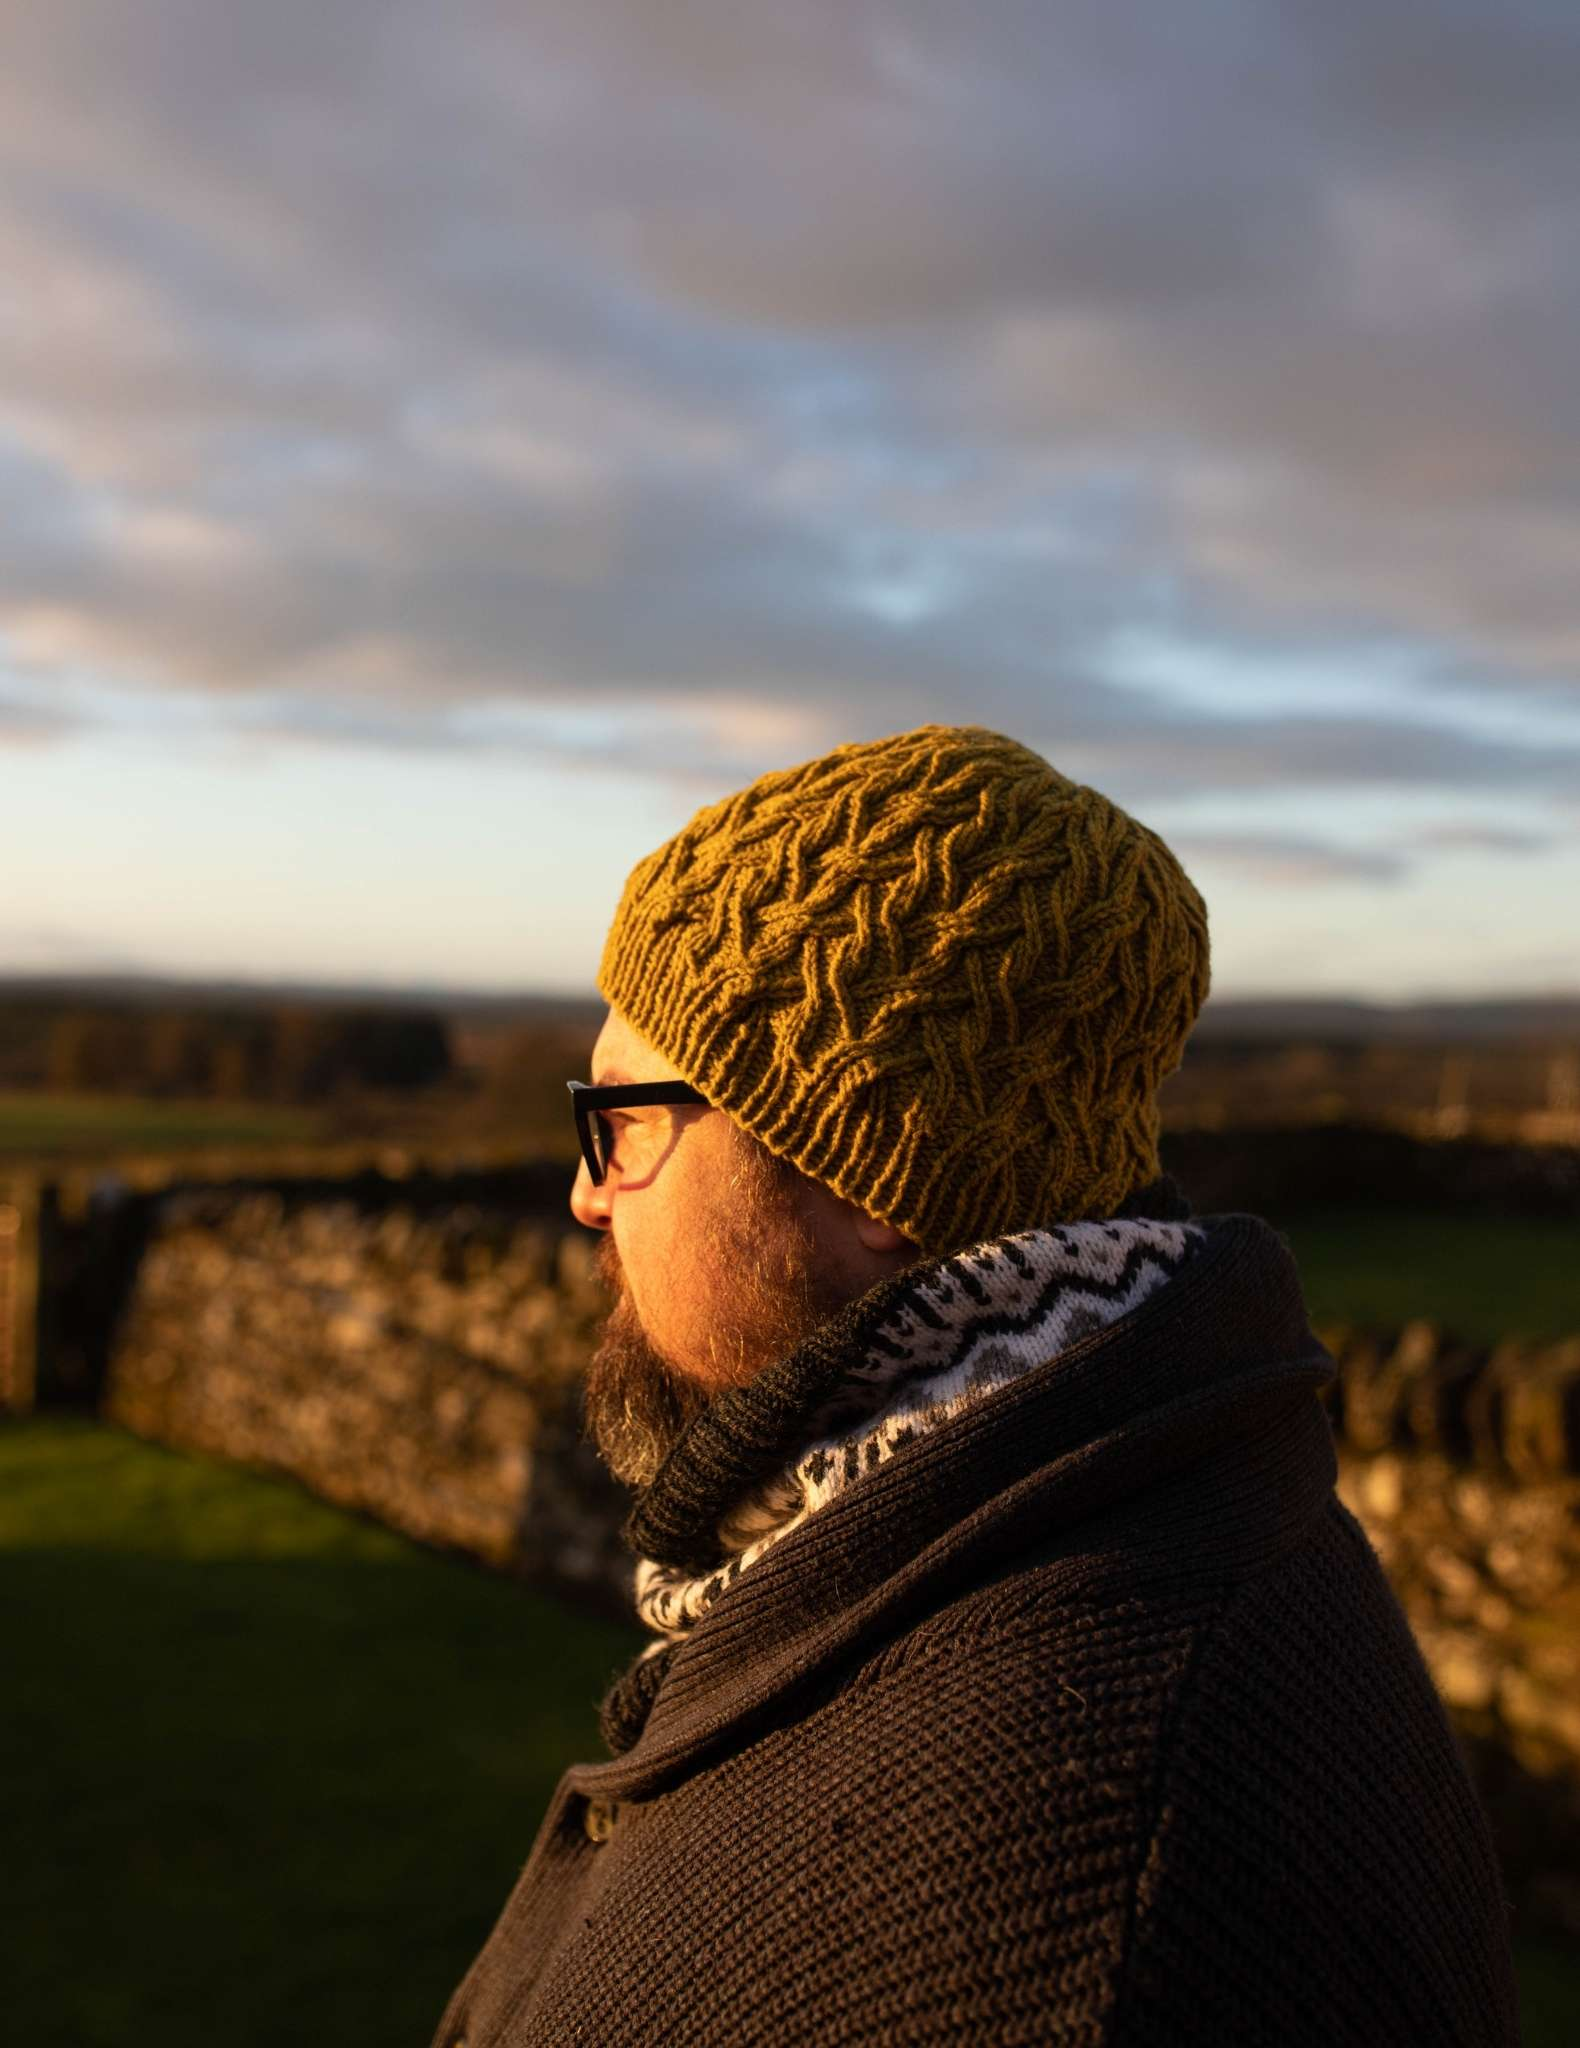 A white man with a beard and glasses looks out onto a rural landscape at sunset. He is wearing a green cabled hat and colourwork cowl